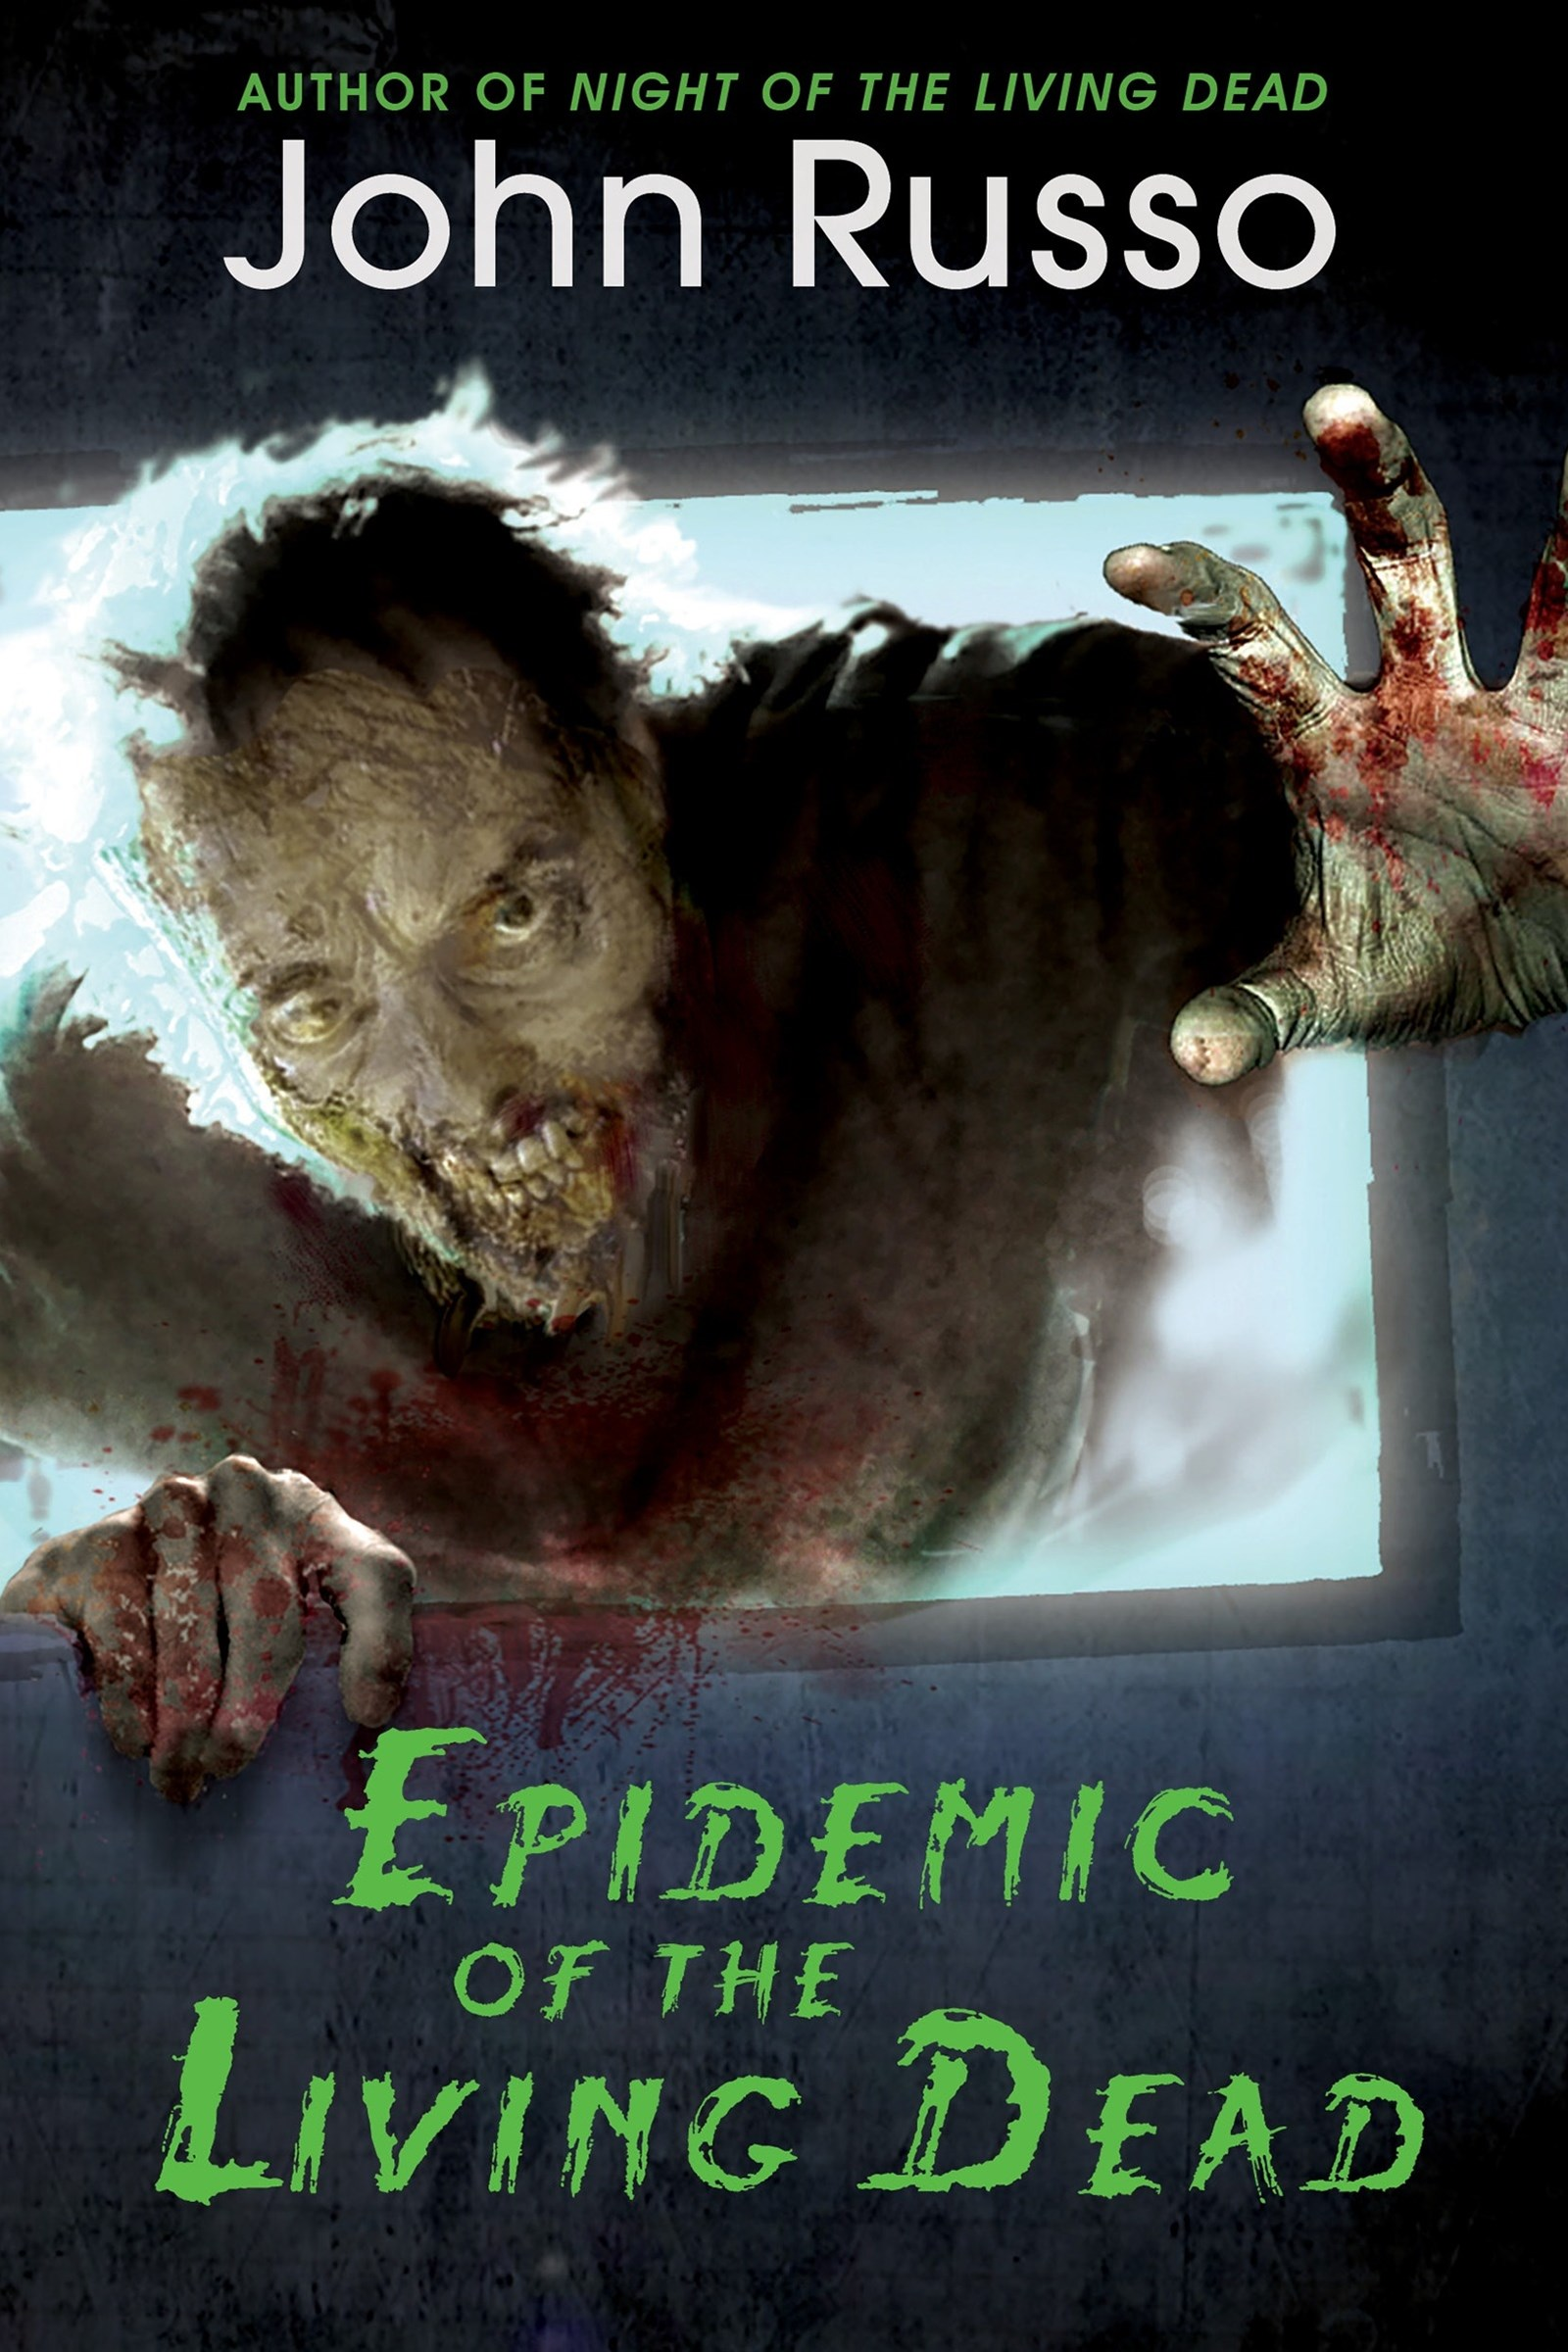 Epidemic Of The Living Dead